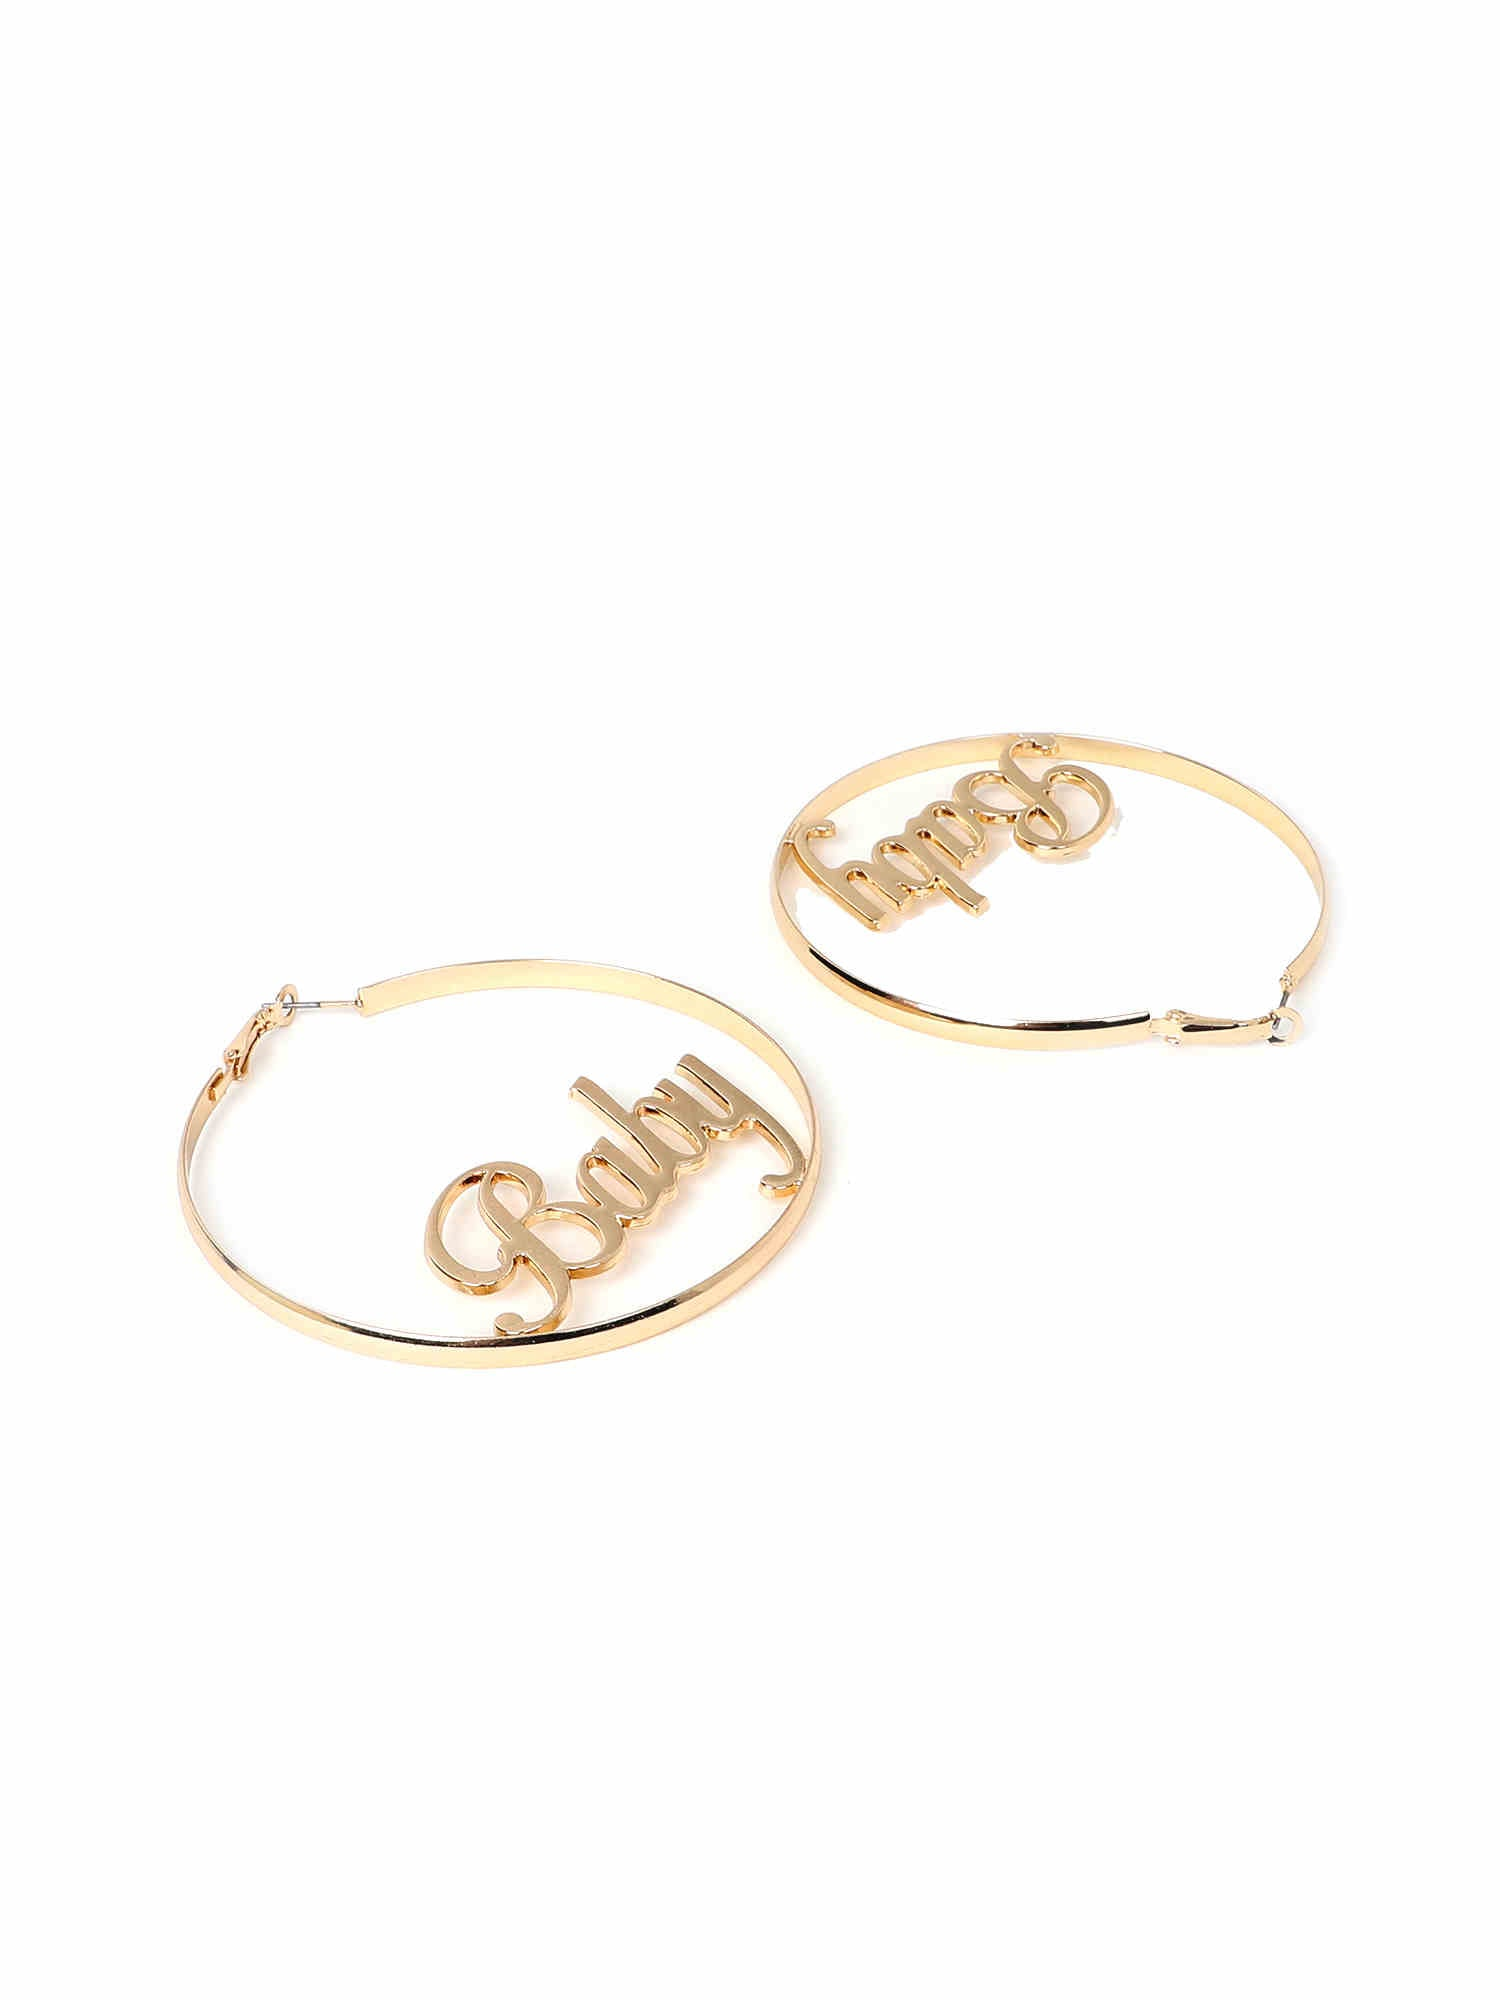 Bellofox Baby Hoops Earrings Earrings